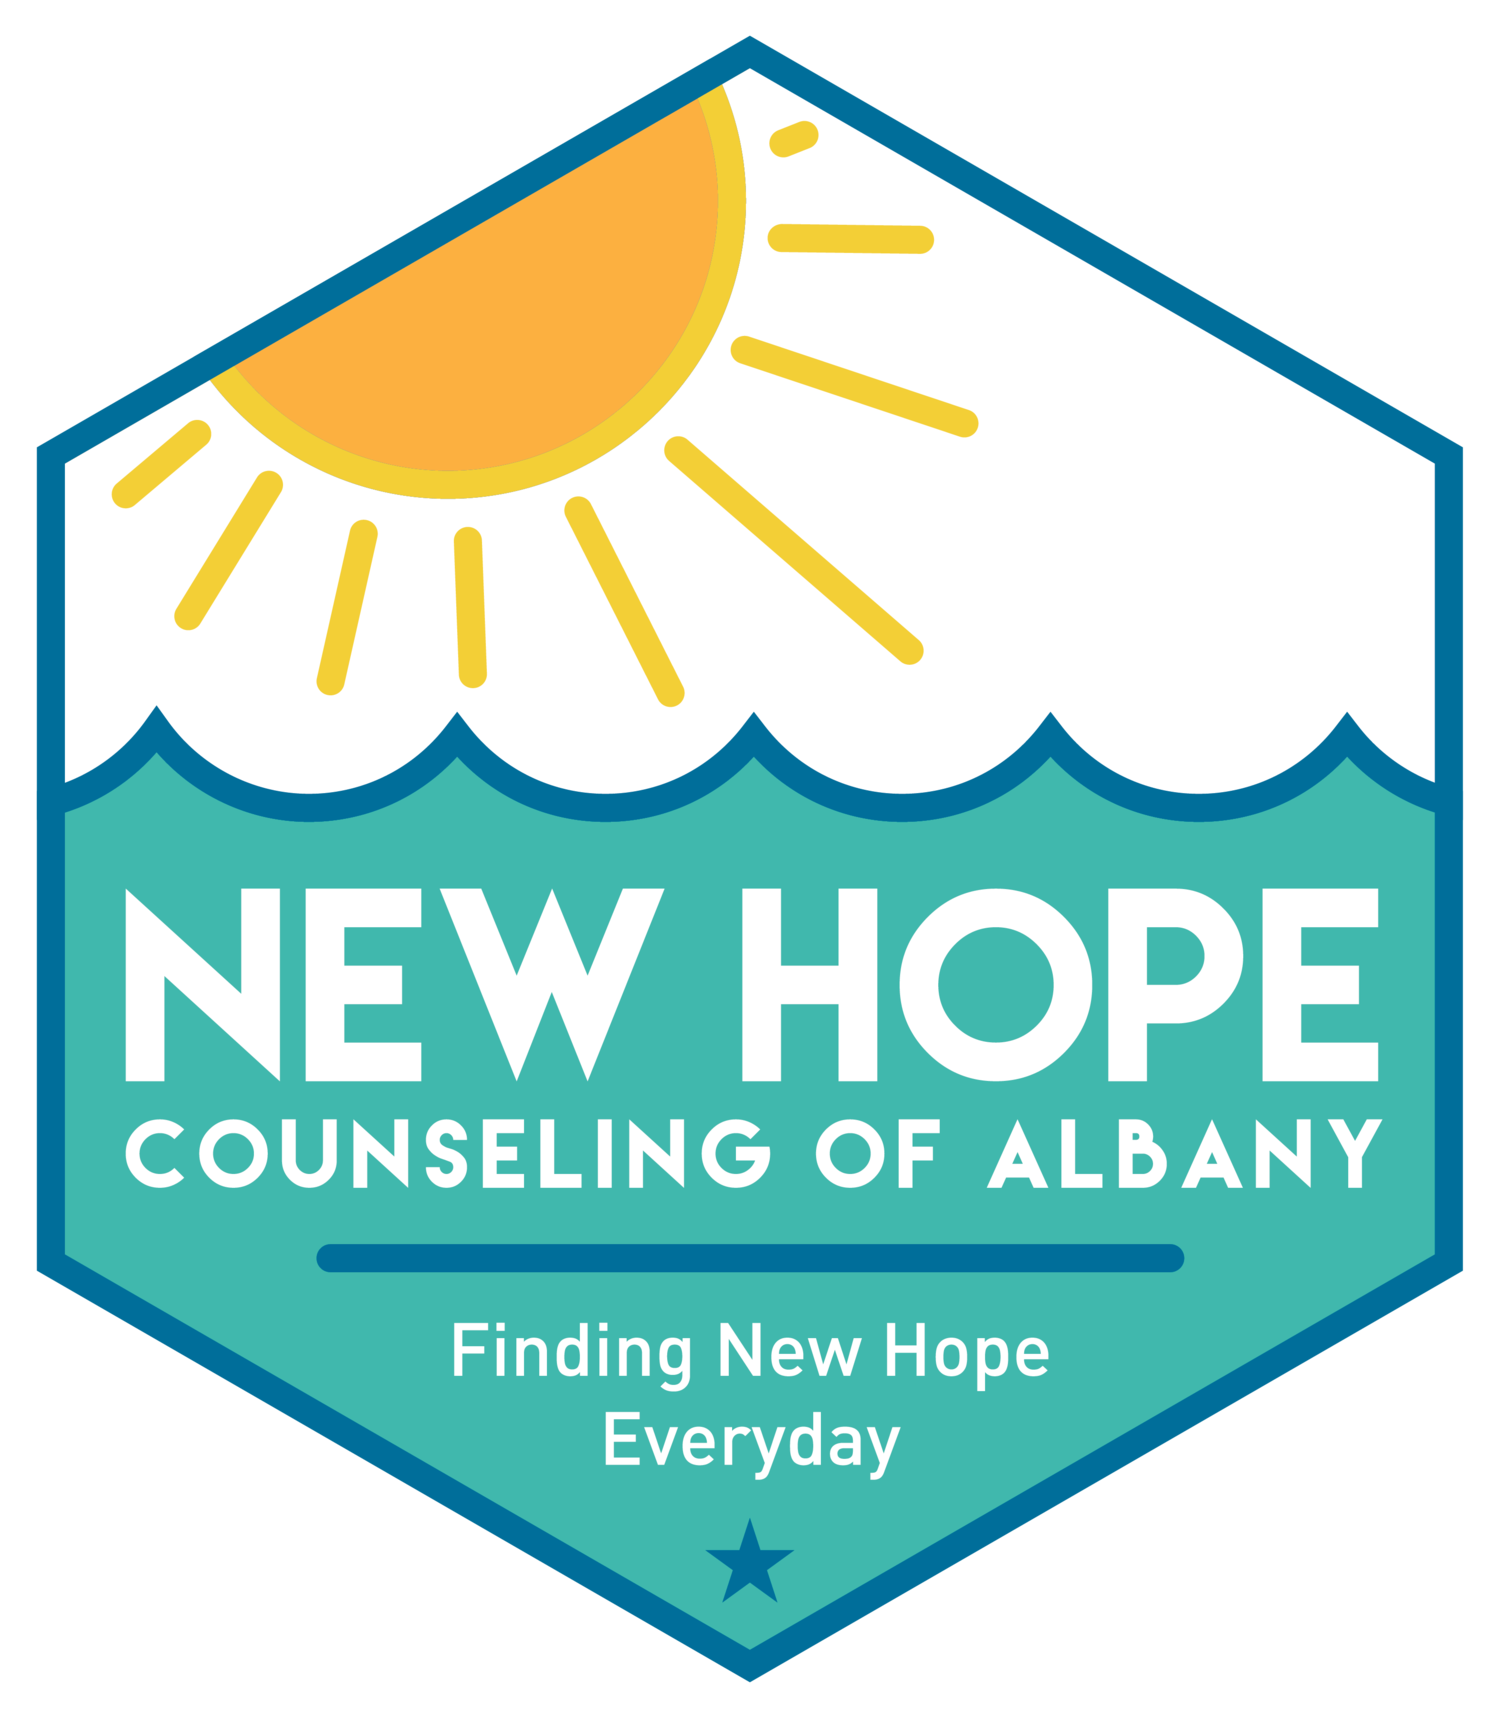 New Hope Counseling of Albany